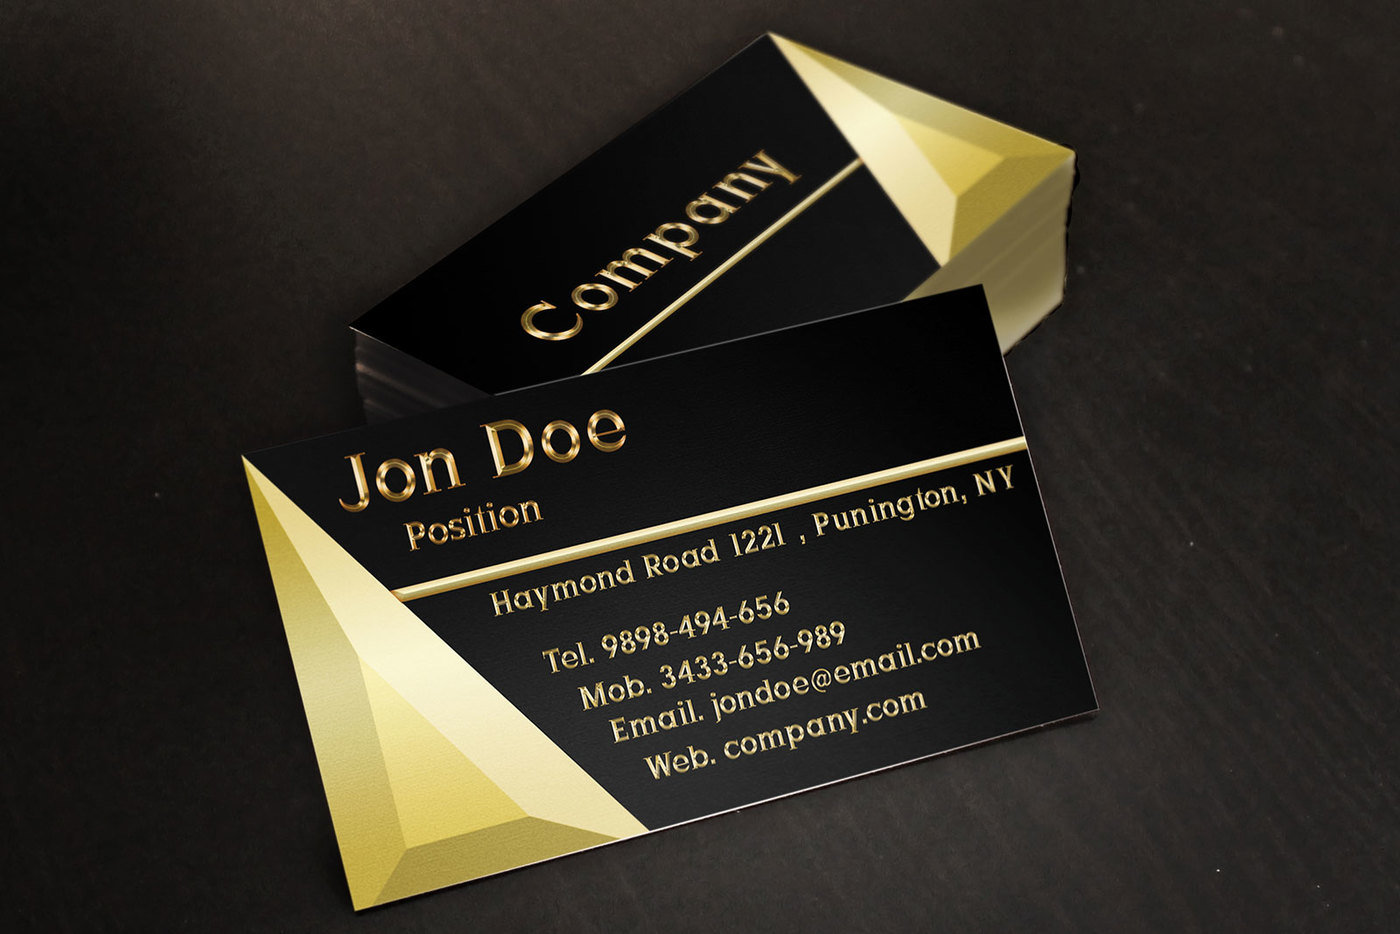 Black and gold jewelry store business card template by borce black and gold jewelry store business card template by borce markoski at coroflot reheart Gallery